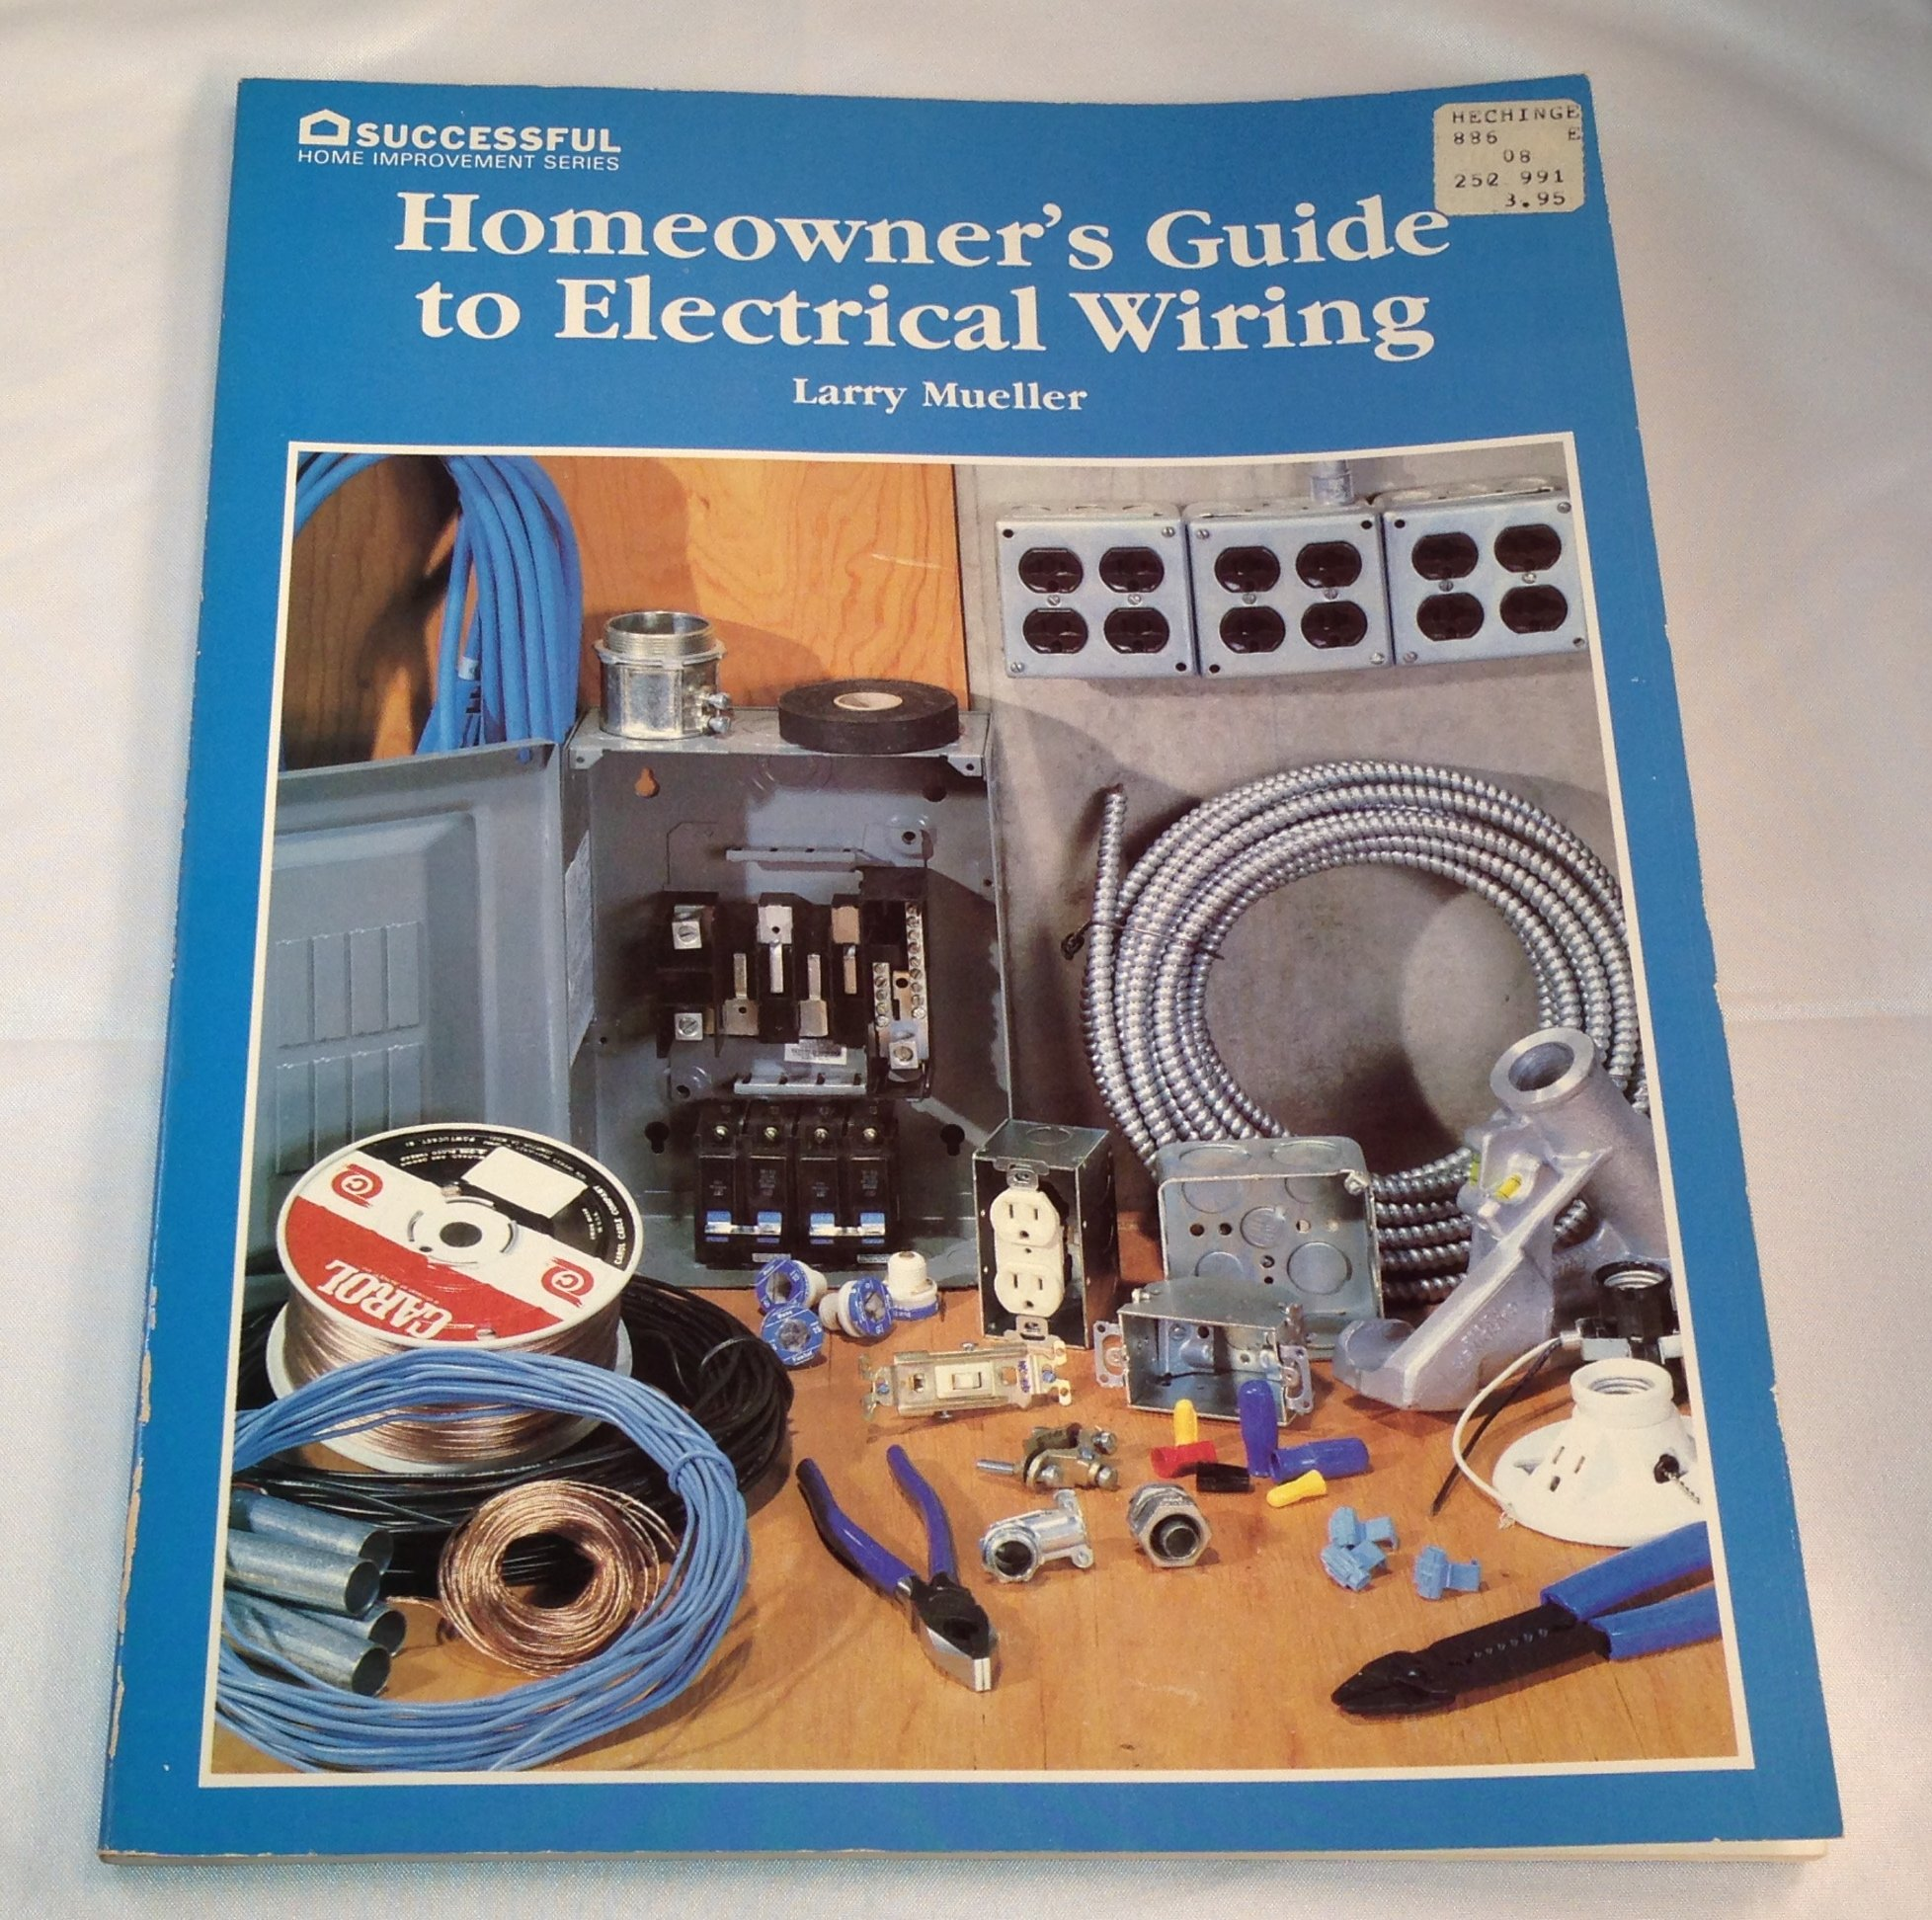 Home Improvement Electrical Wiring More About Improvements Diagrams And Homeowner S Guide To Successful Rh Amazon Com 120v Switch